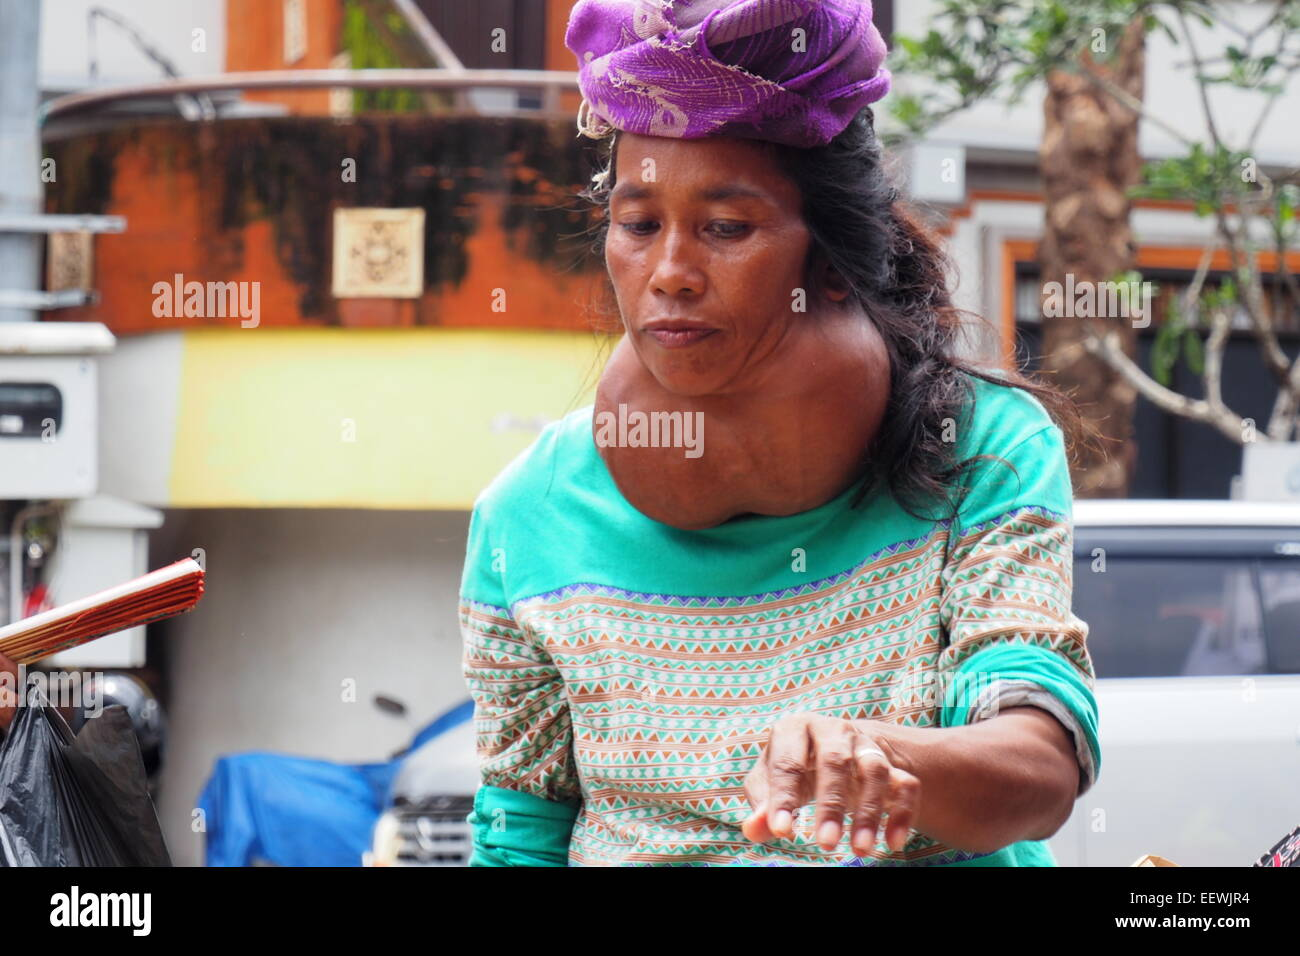 Street hawker with a large benign goitre in Ubud, Bali. Stock Photo